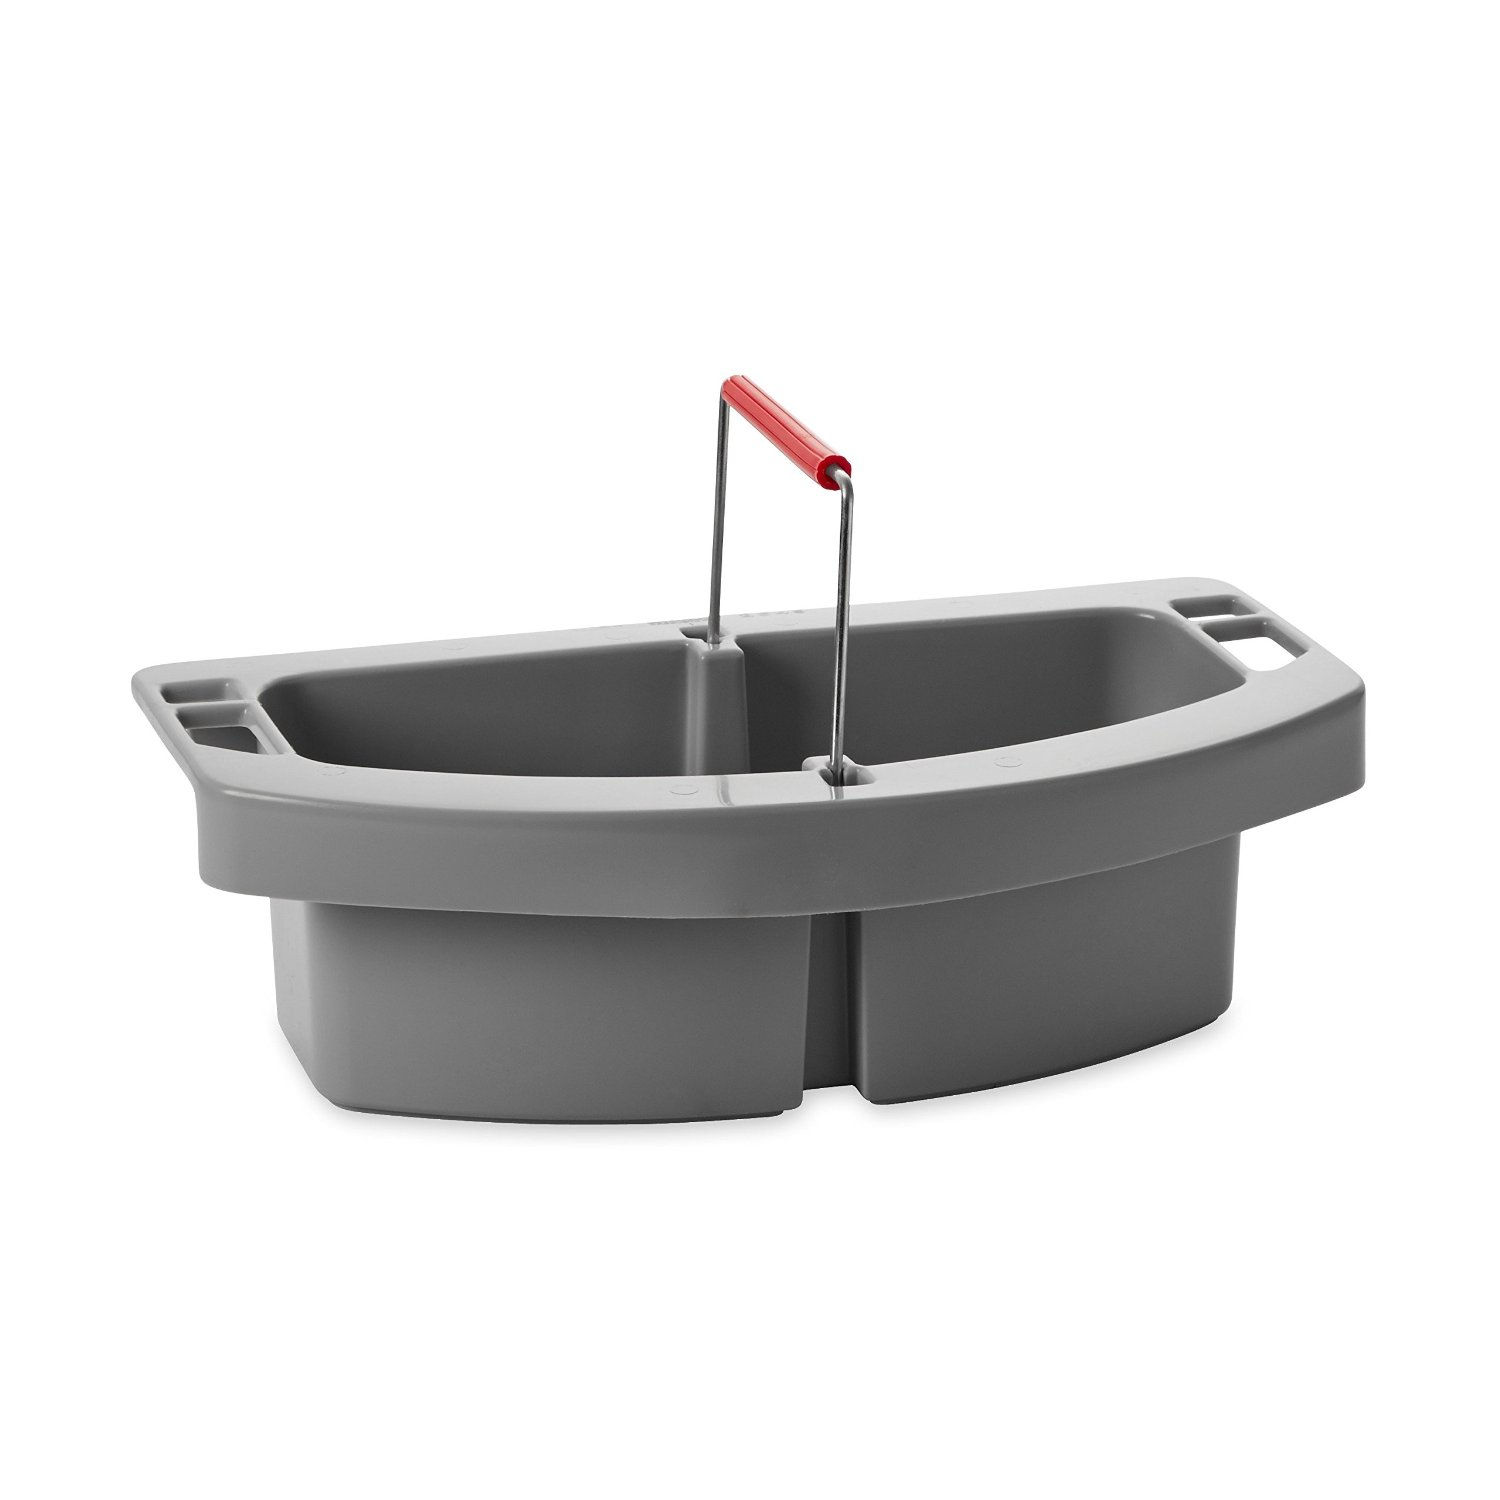 Cheap Cleaning Supply Caddy, find Cleaning Supply Caddy deals on ...